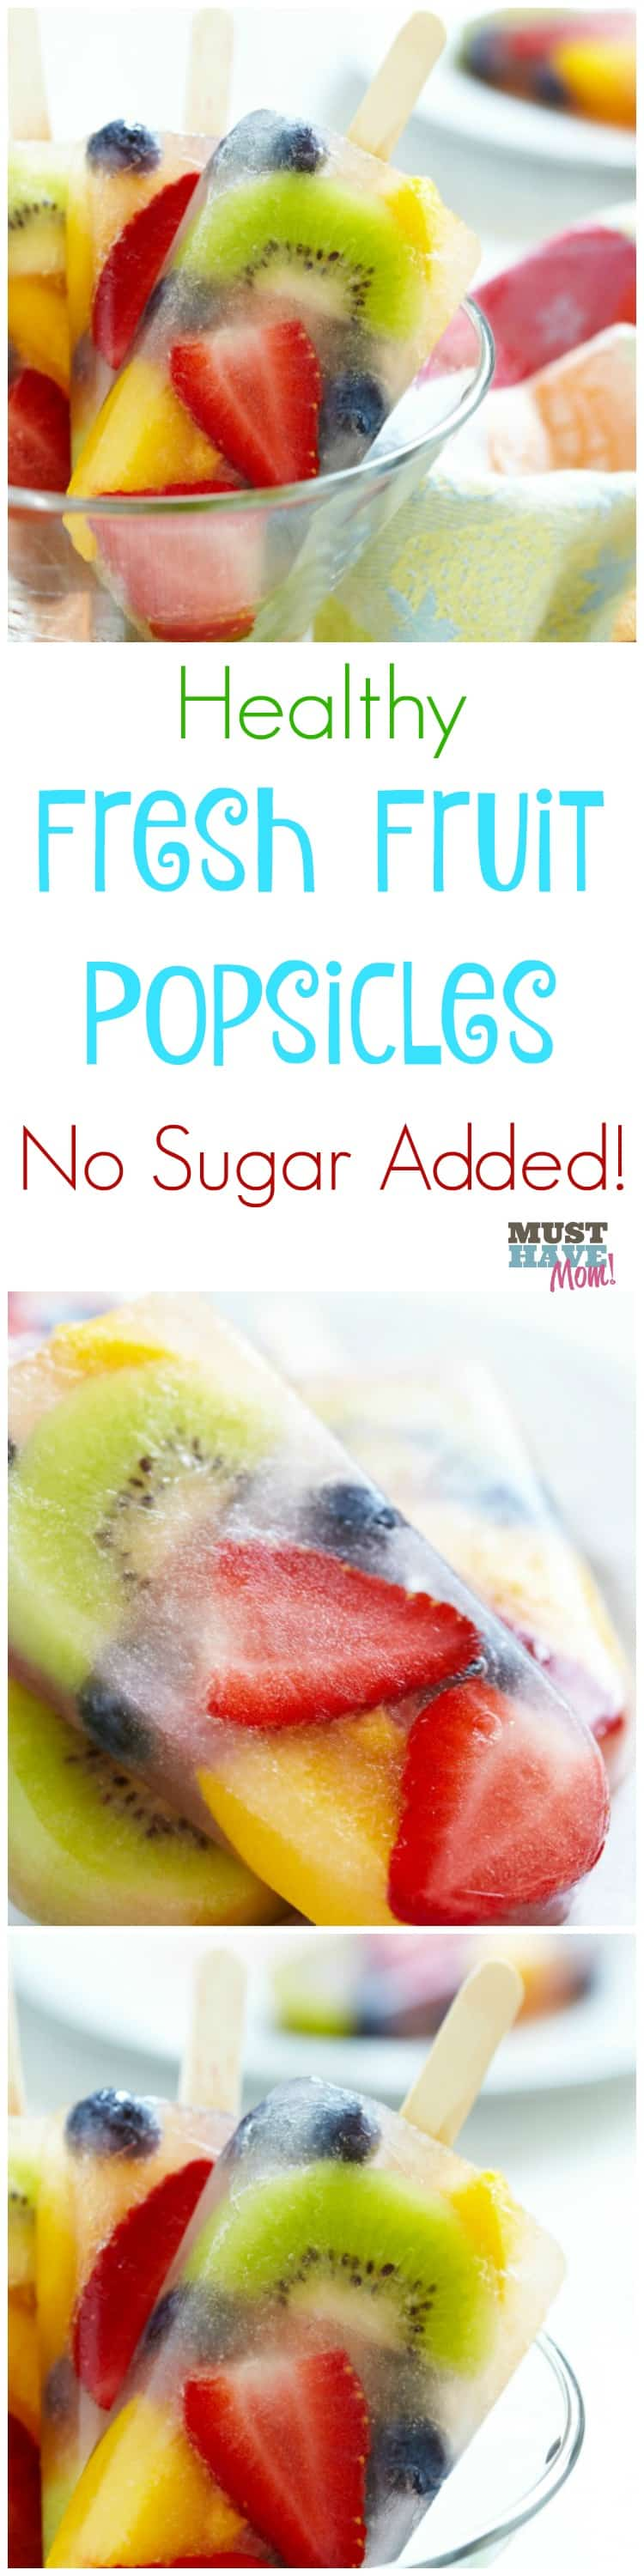 Healthy Fresh Fruit Popsicles No sugar added! Keep toddlers hydrated with these healthy real fruit pops with no added sugar. Just 2 ingredients!